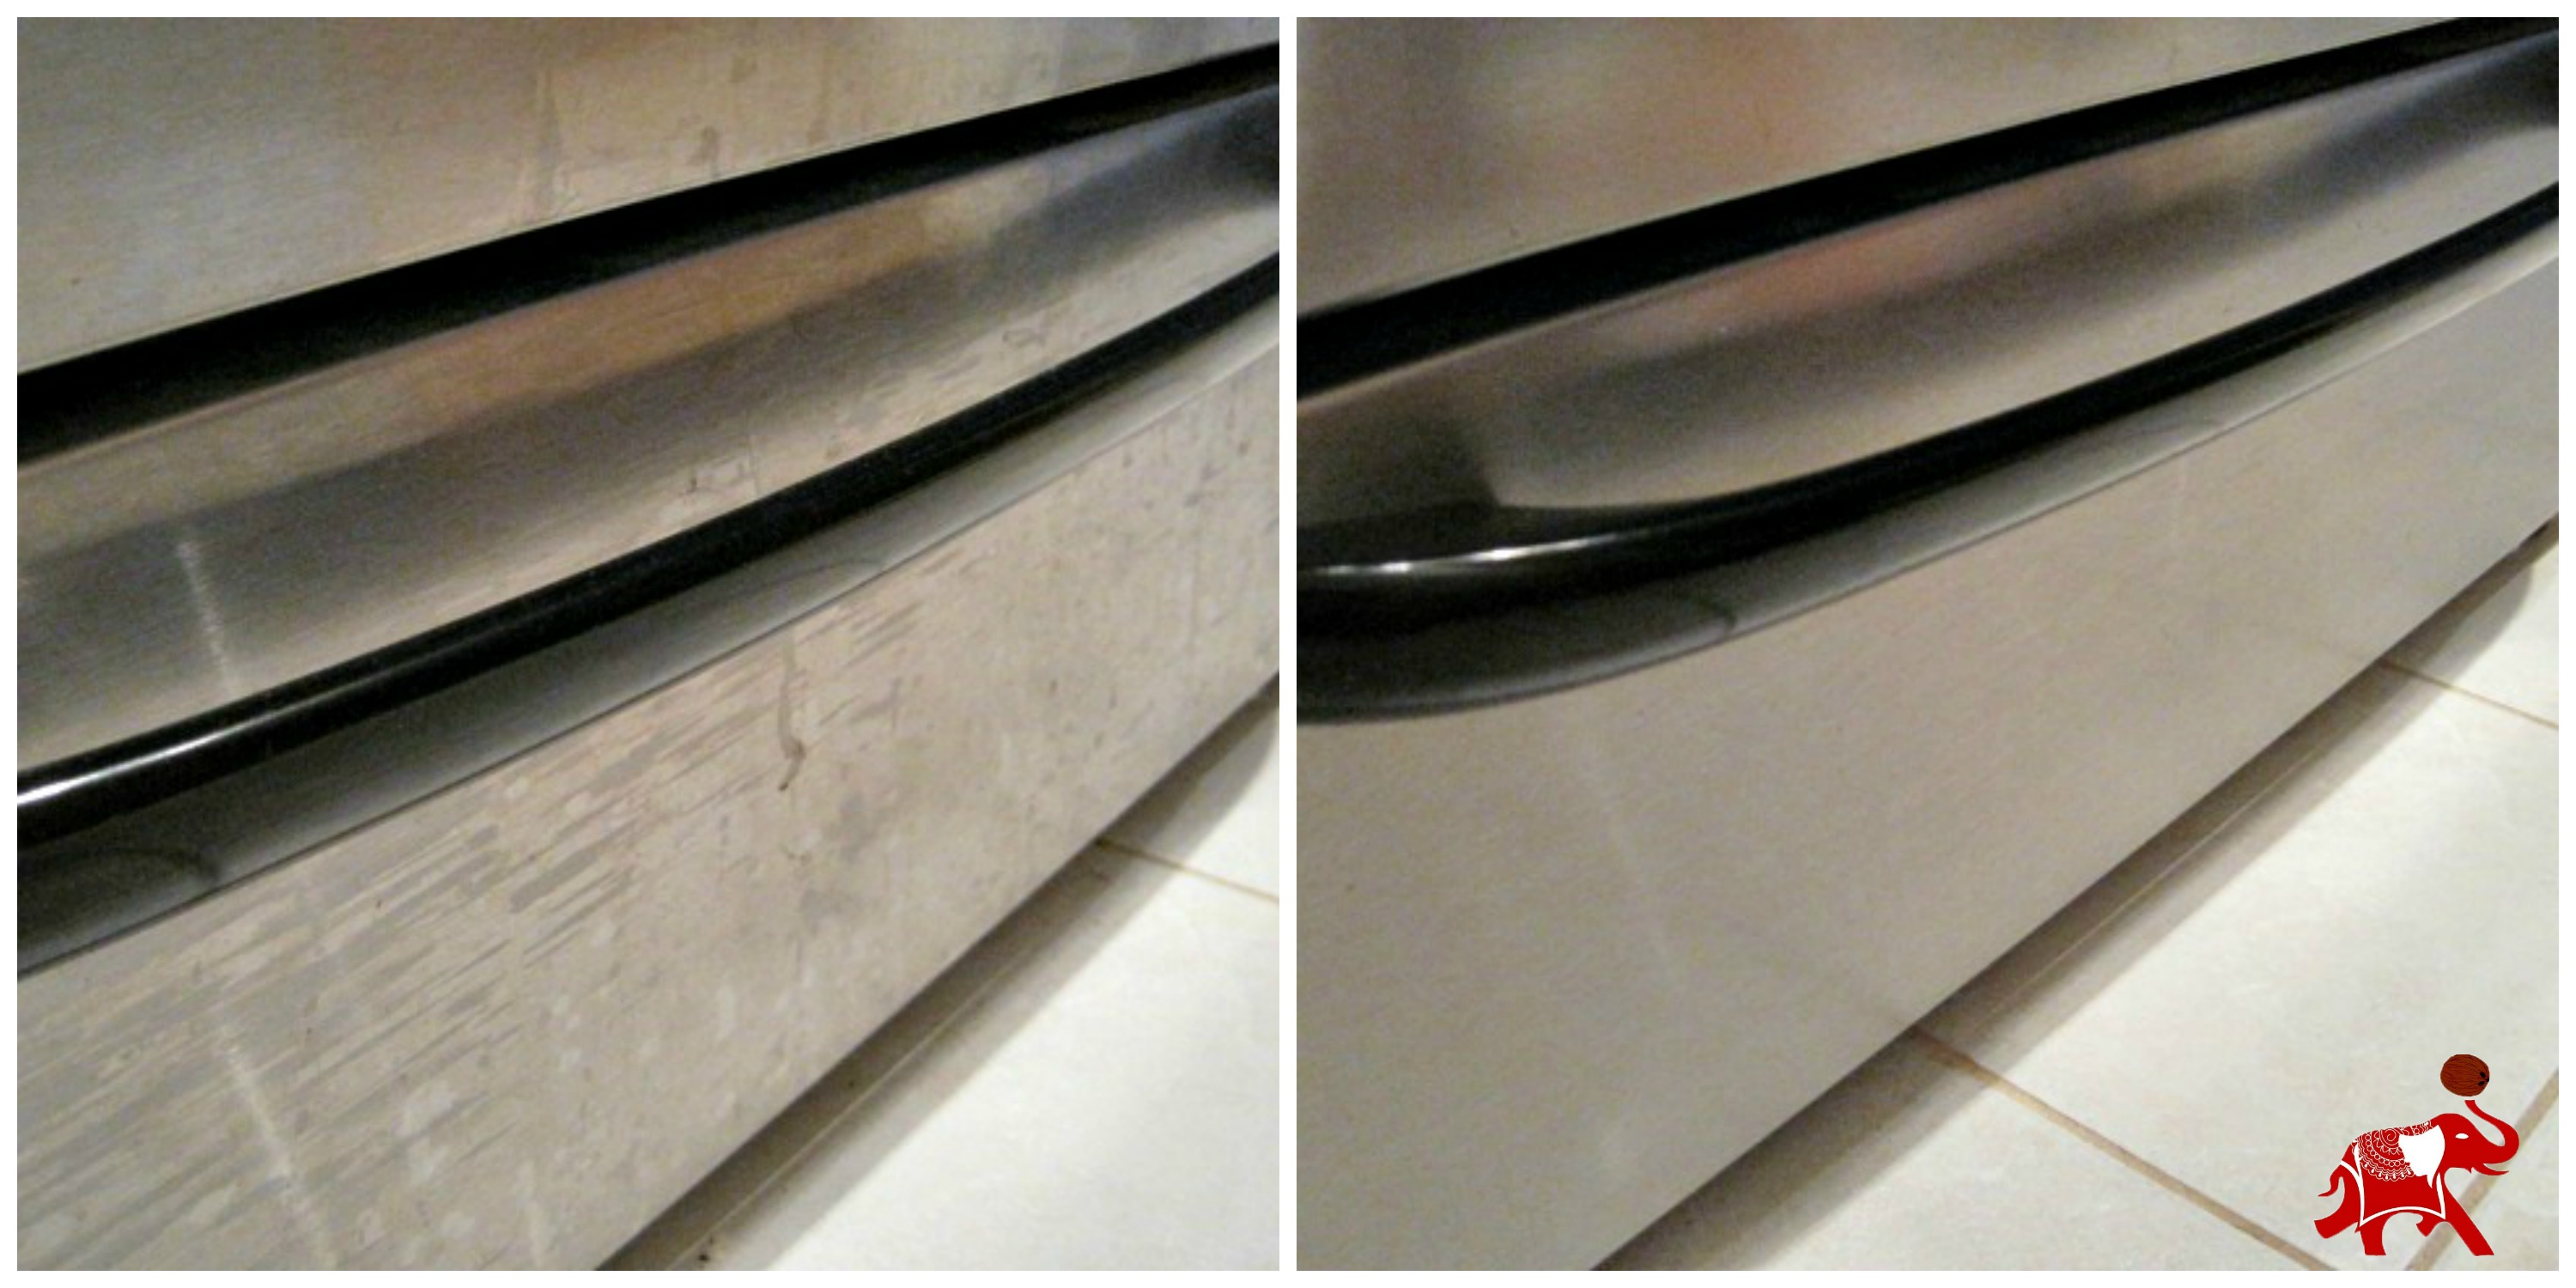 The Best Way To Clean Stainless Steel Appliances How To Polish Stainless Steel Appliances